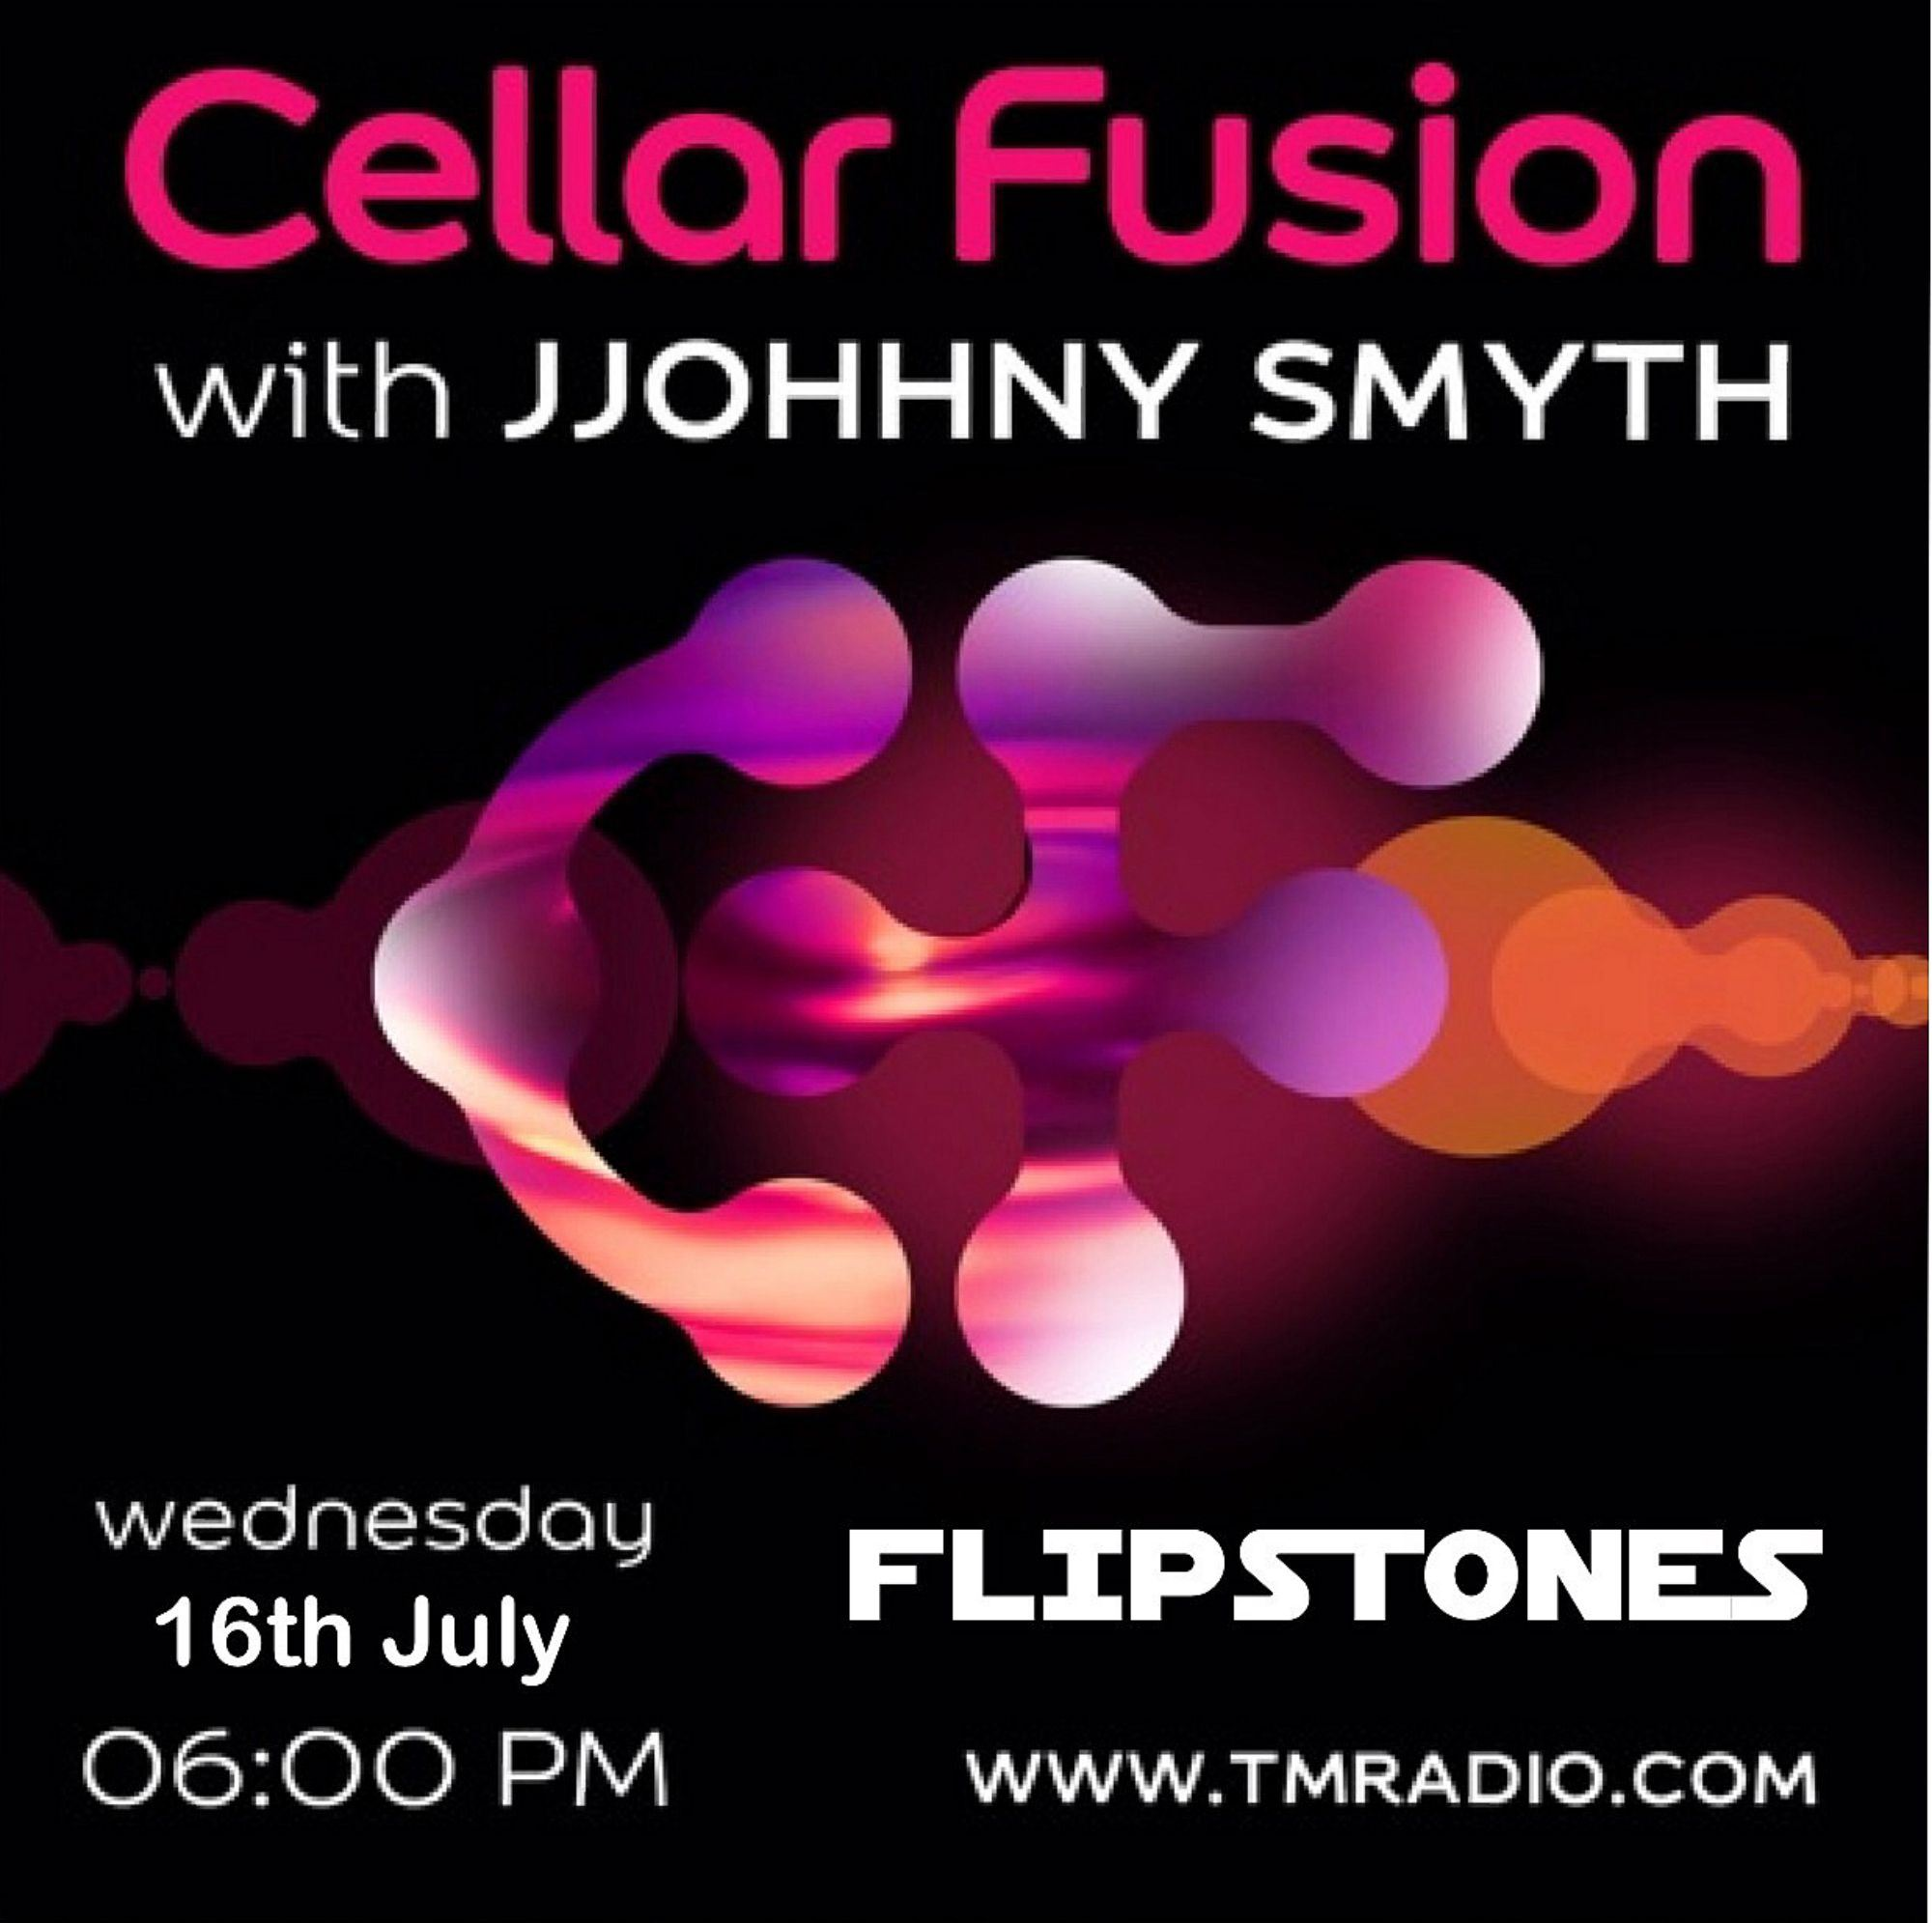 download → Flipstones (Live) - Cellar Fusion on TM RADIO - July 2014